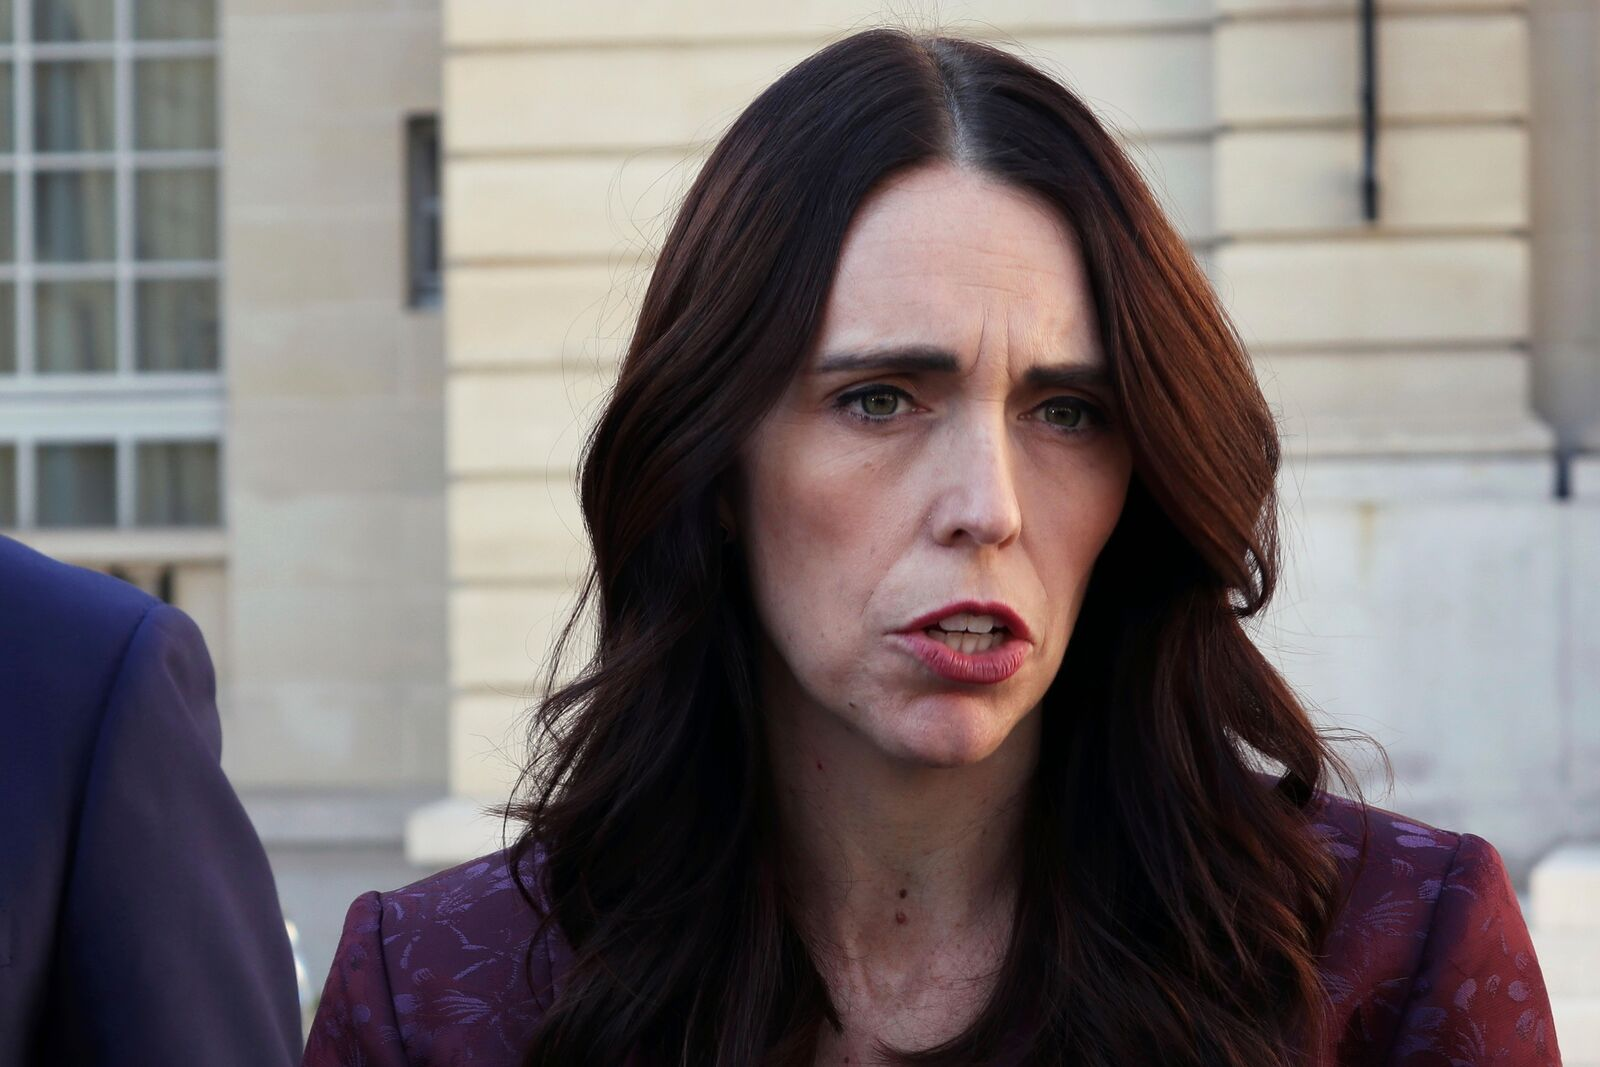 New Zealand Prime Minister Jacinda Ardern gives a press conference, at the OECD headquarters, in Paris, Tuesday, May 14, 2019. (AP Photo/Thibault Camus)